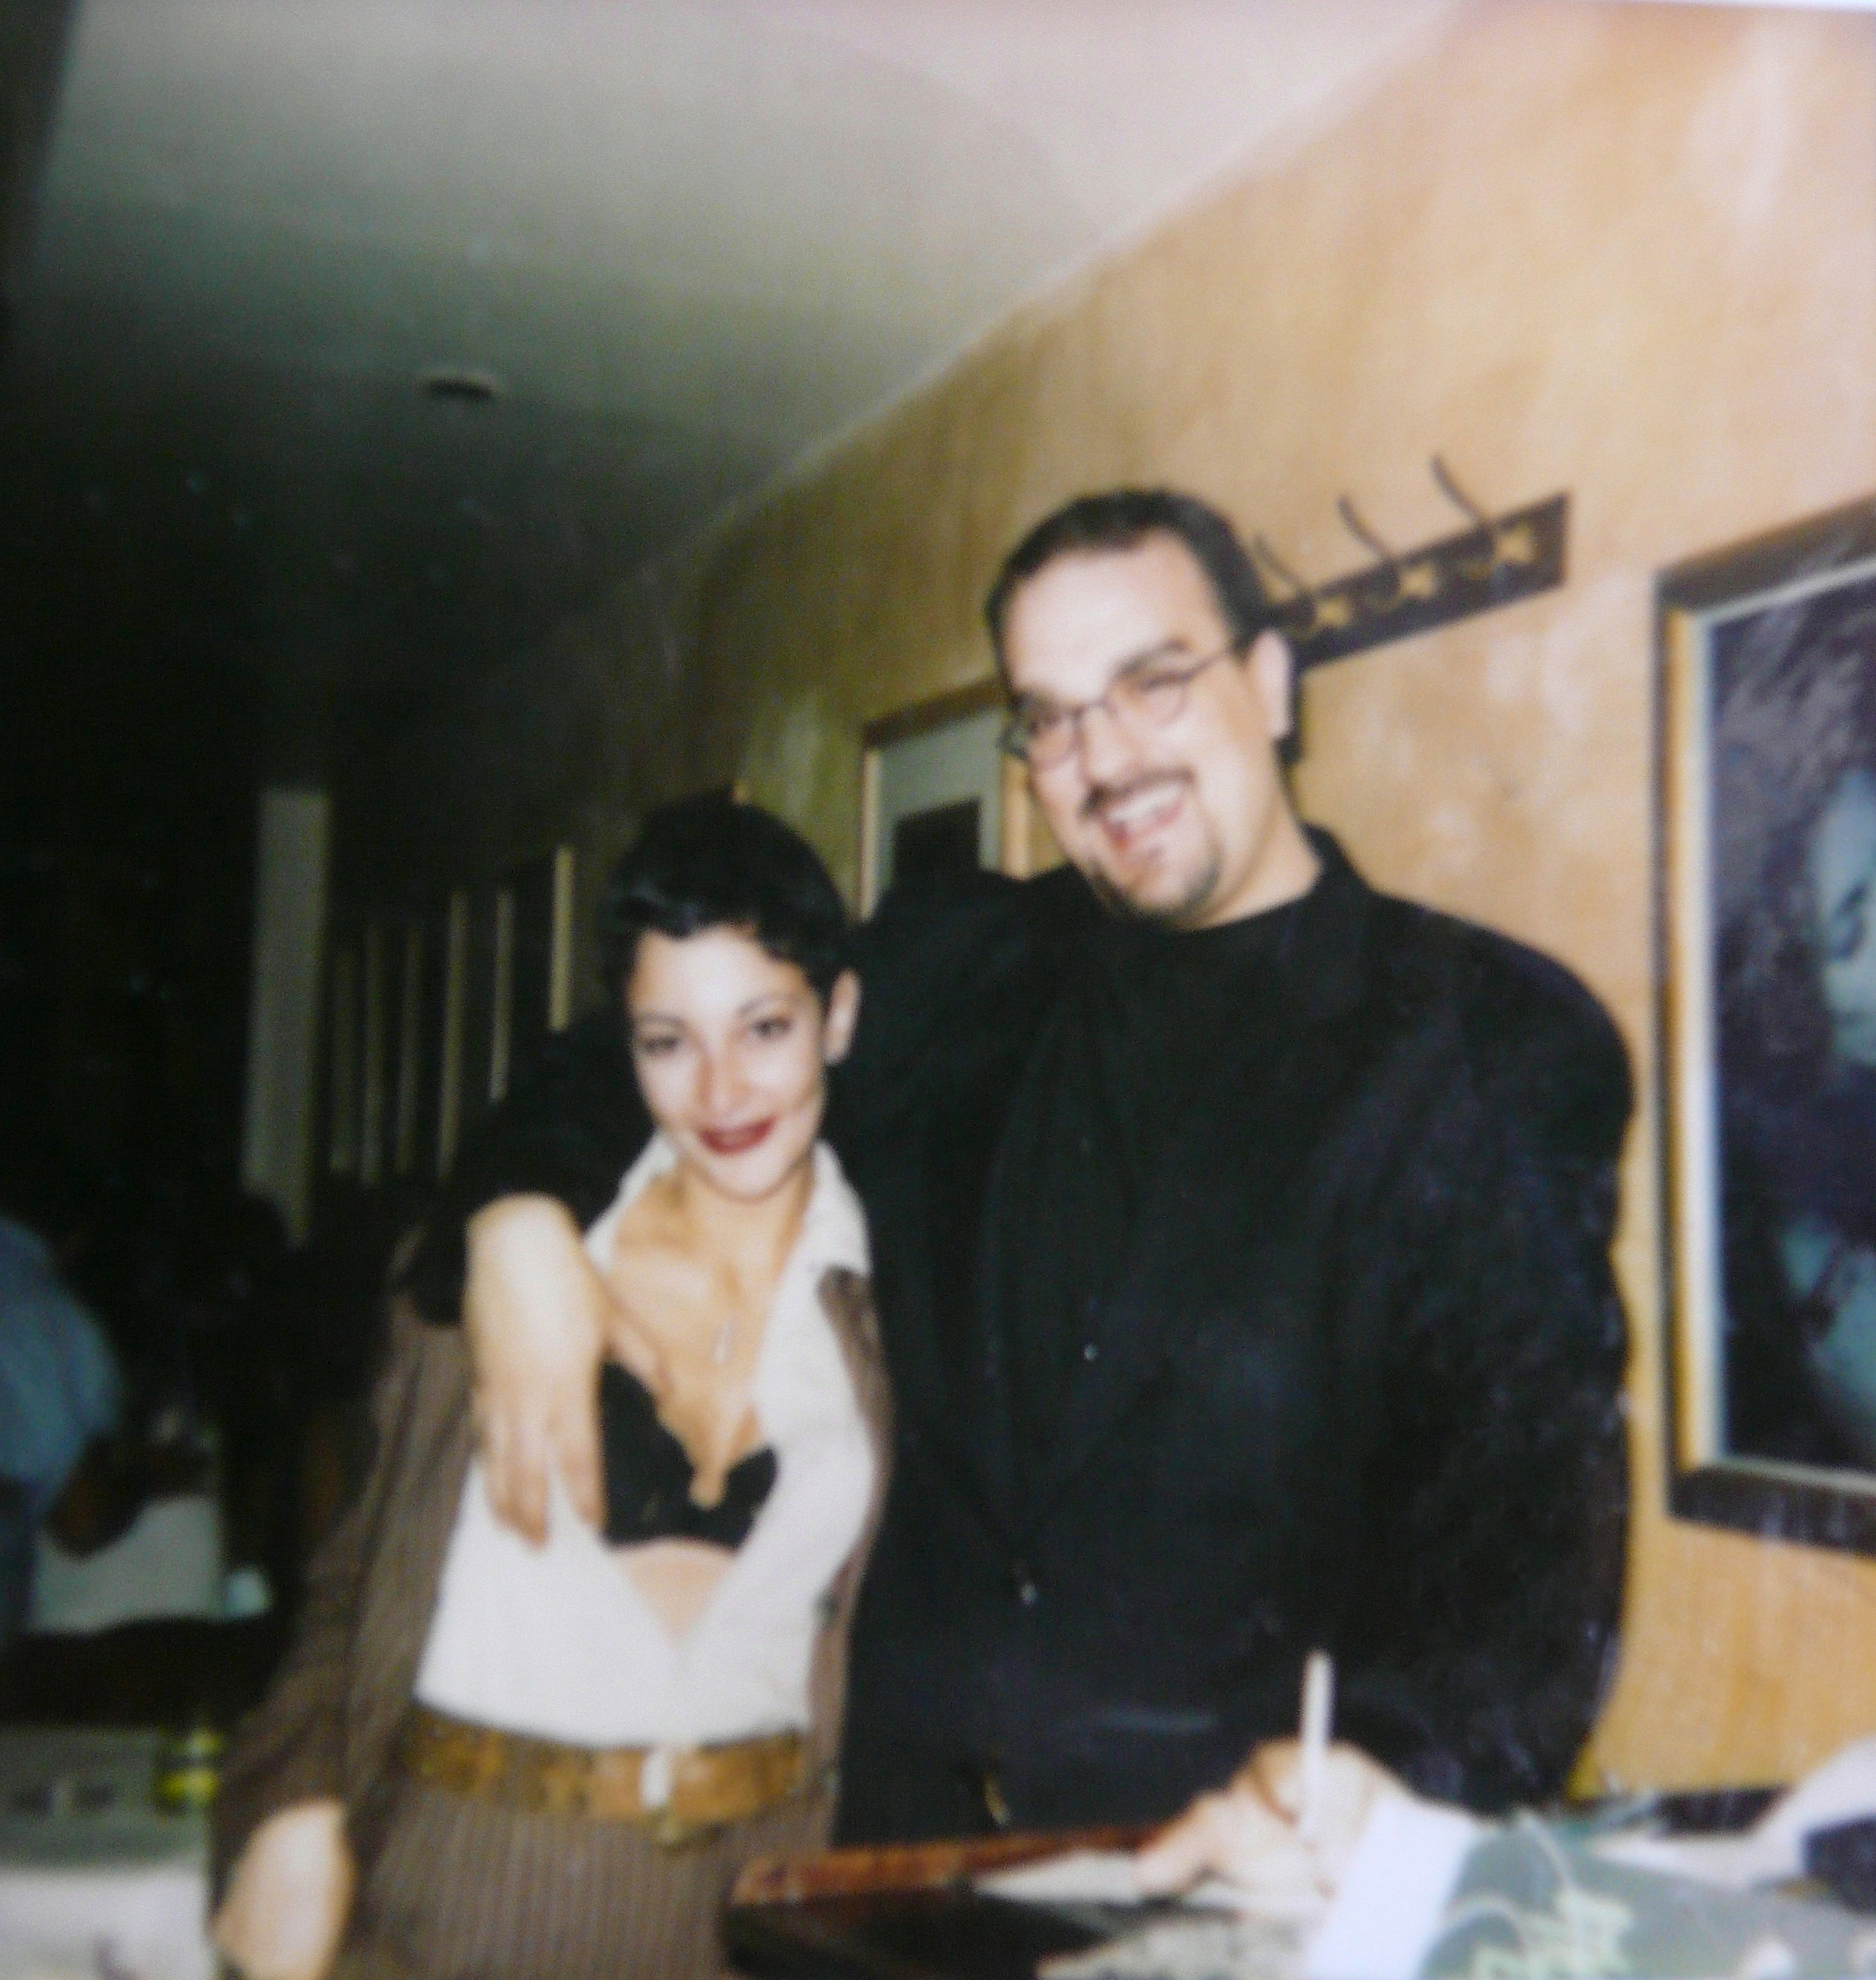 """""""Event co-creator Wanda and restaurant manager Roy P. I am wearing the Italian pinned striped suit with sexy lingerie. We were all playing with the Male/female Butch/Femme fashion style of the '90's lesbian scene."""" - Wanda Acosta, 2018. Image courtesy of Wanda Acosta"""